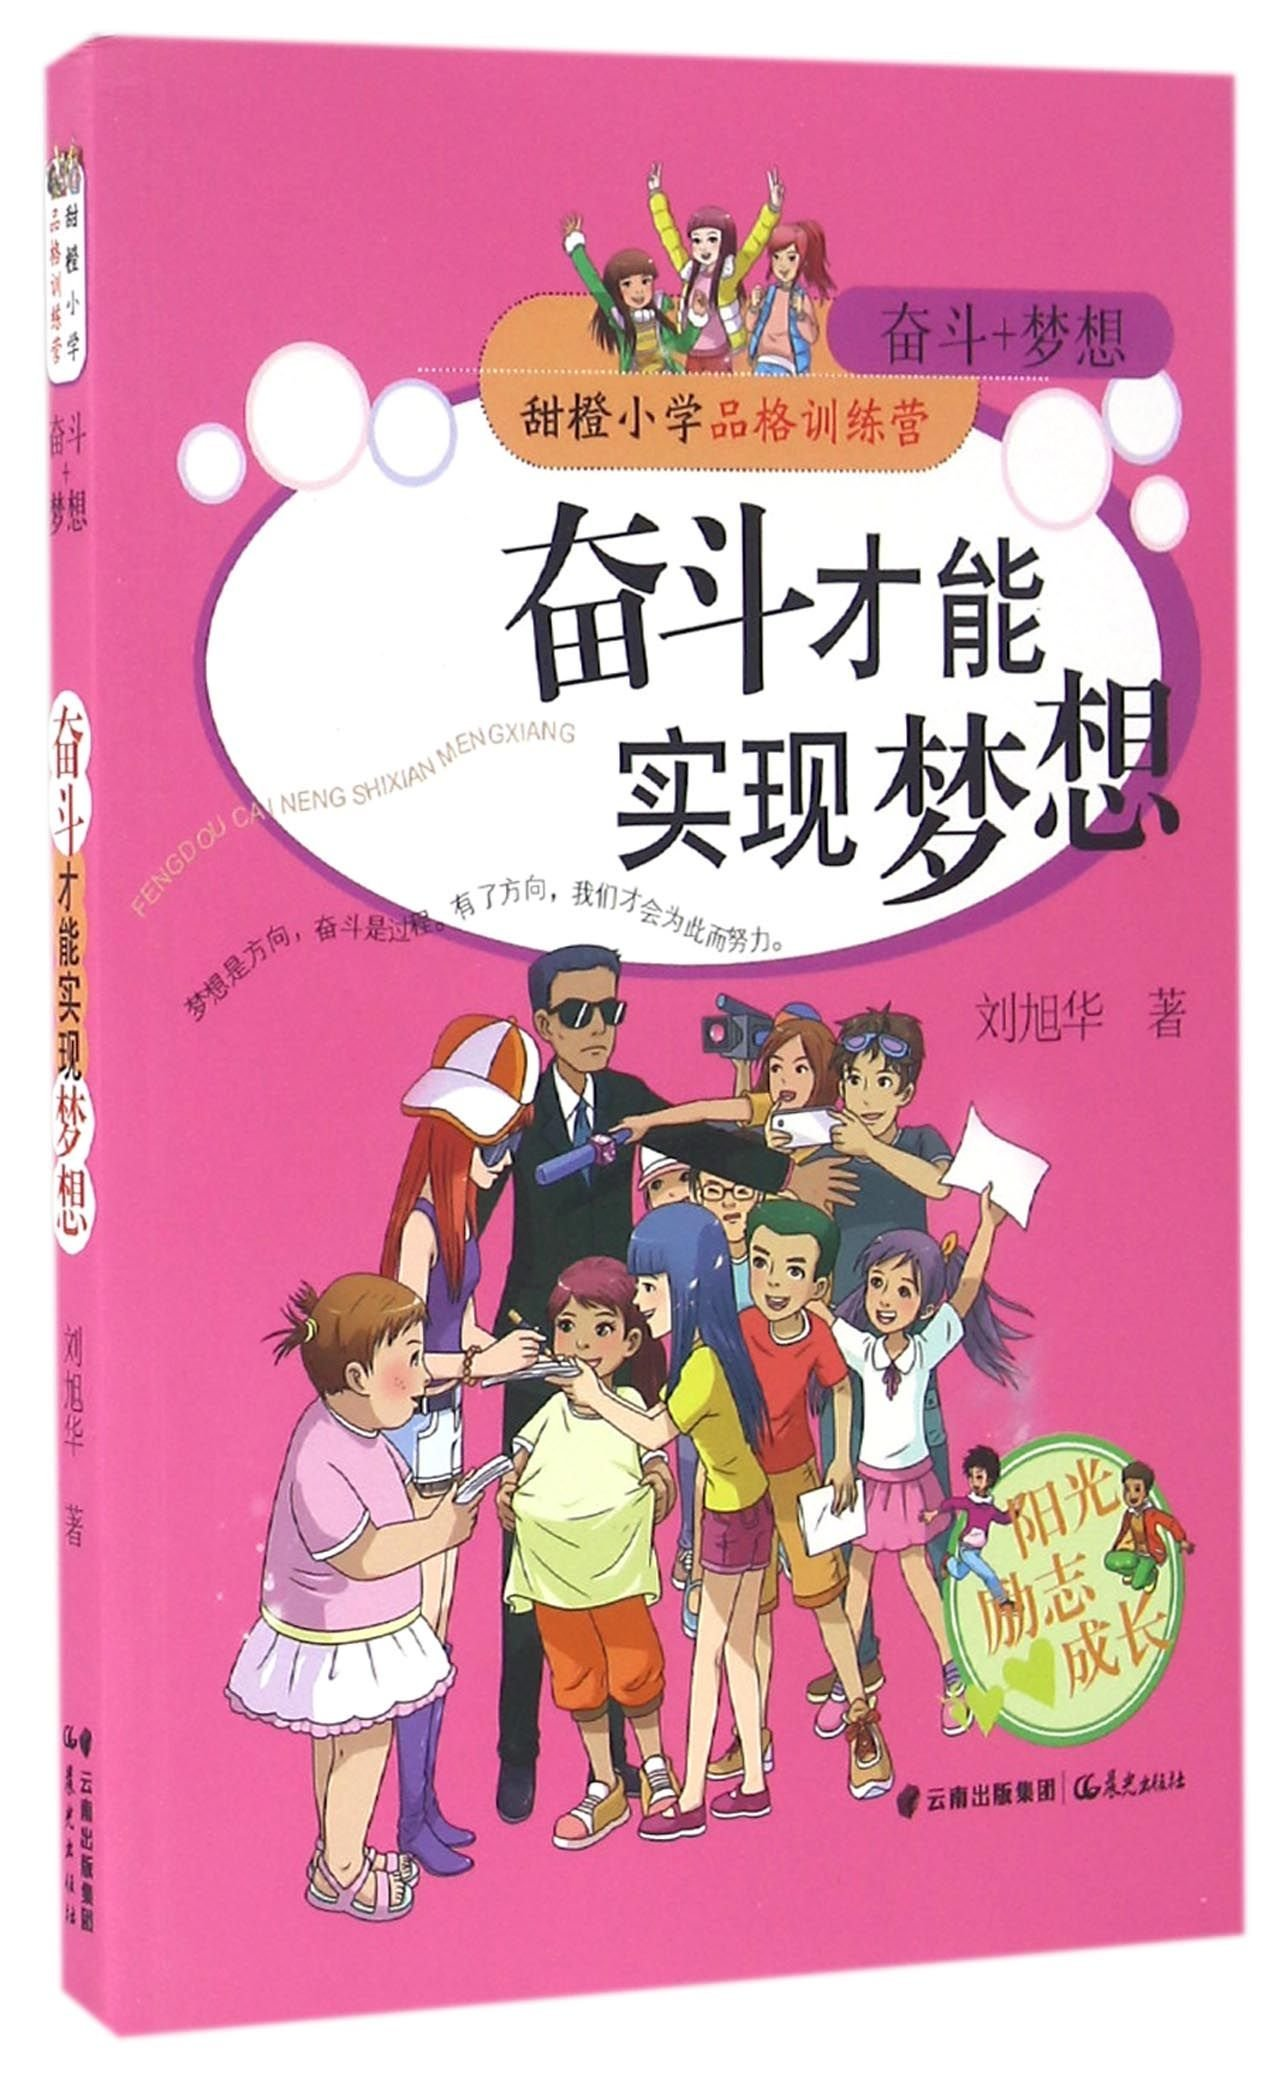 Download Only Fighting Can Realize Dreams (Chinese Edition) PDF ePub fb2 book